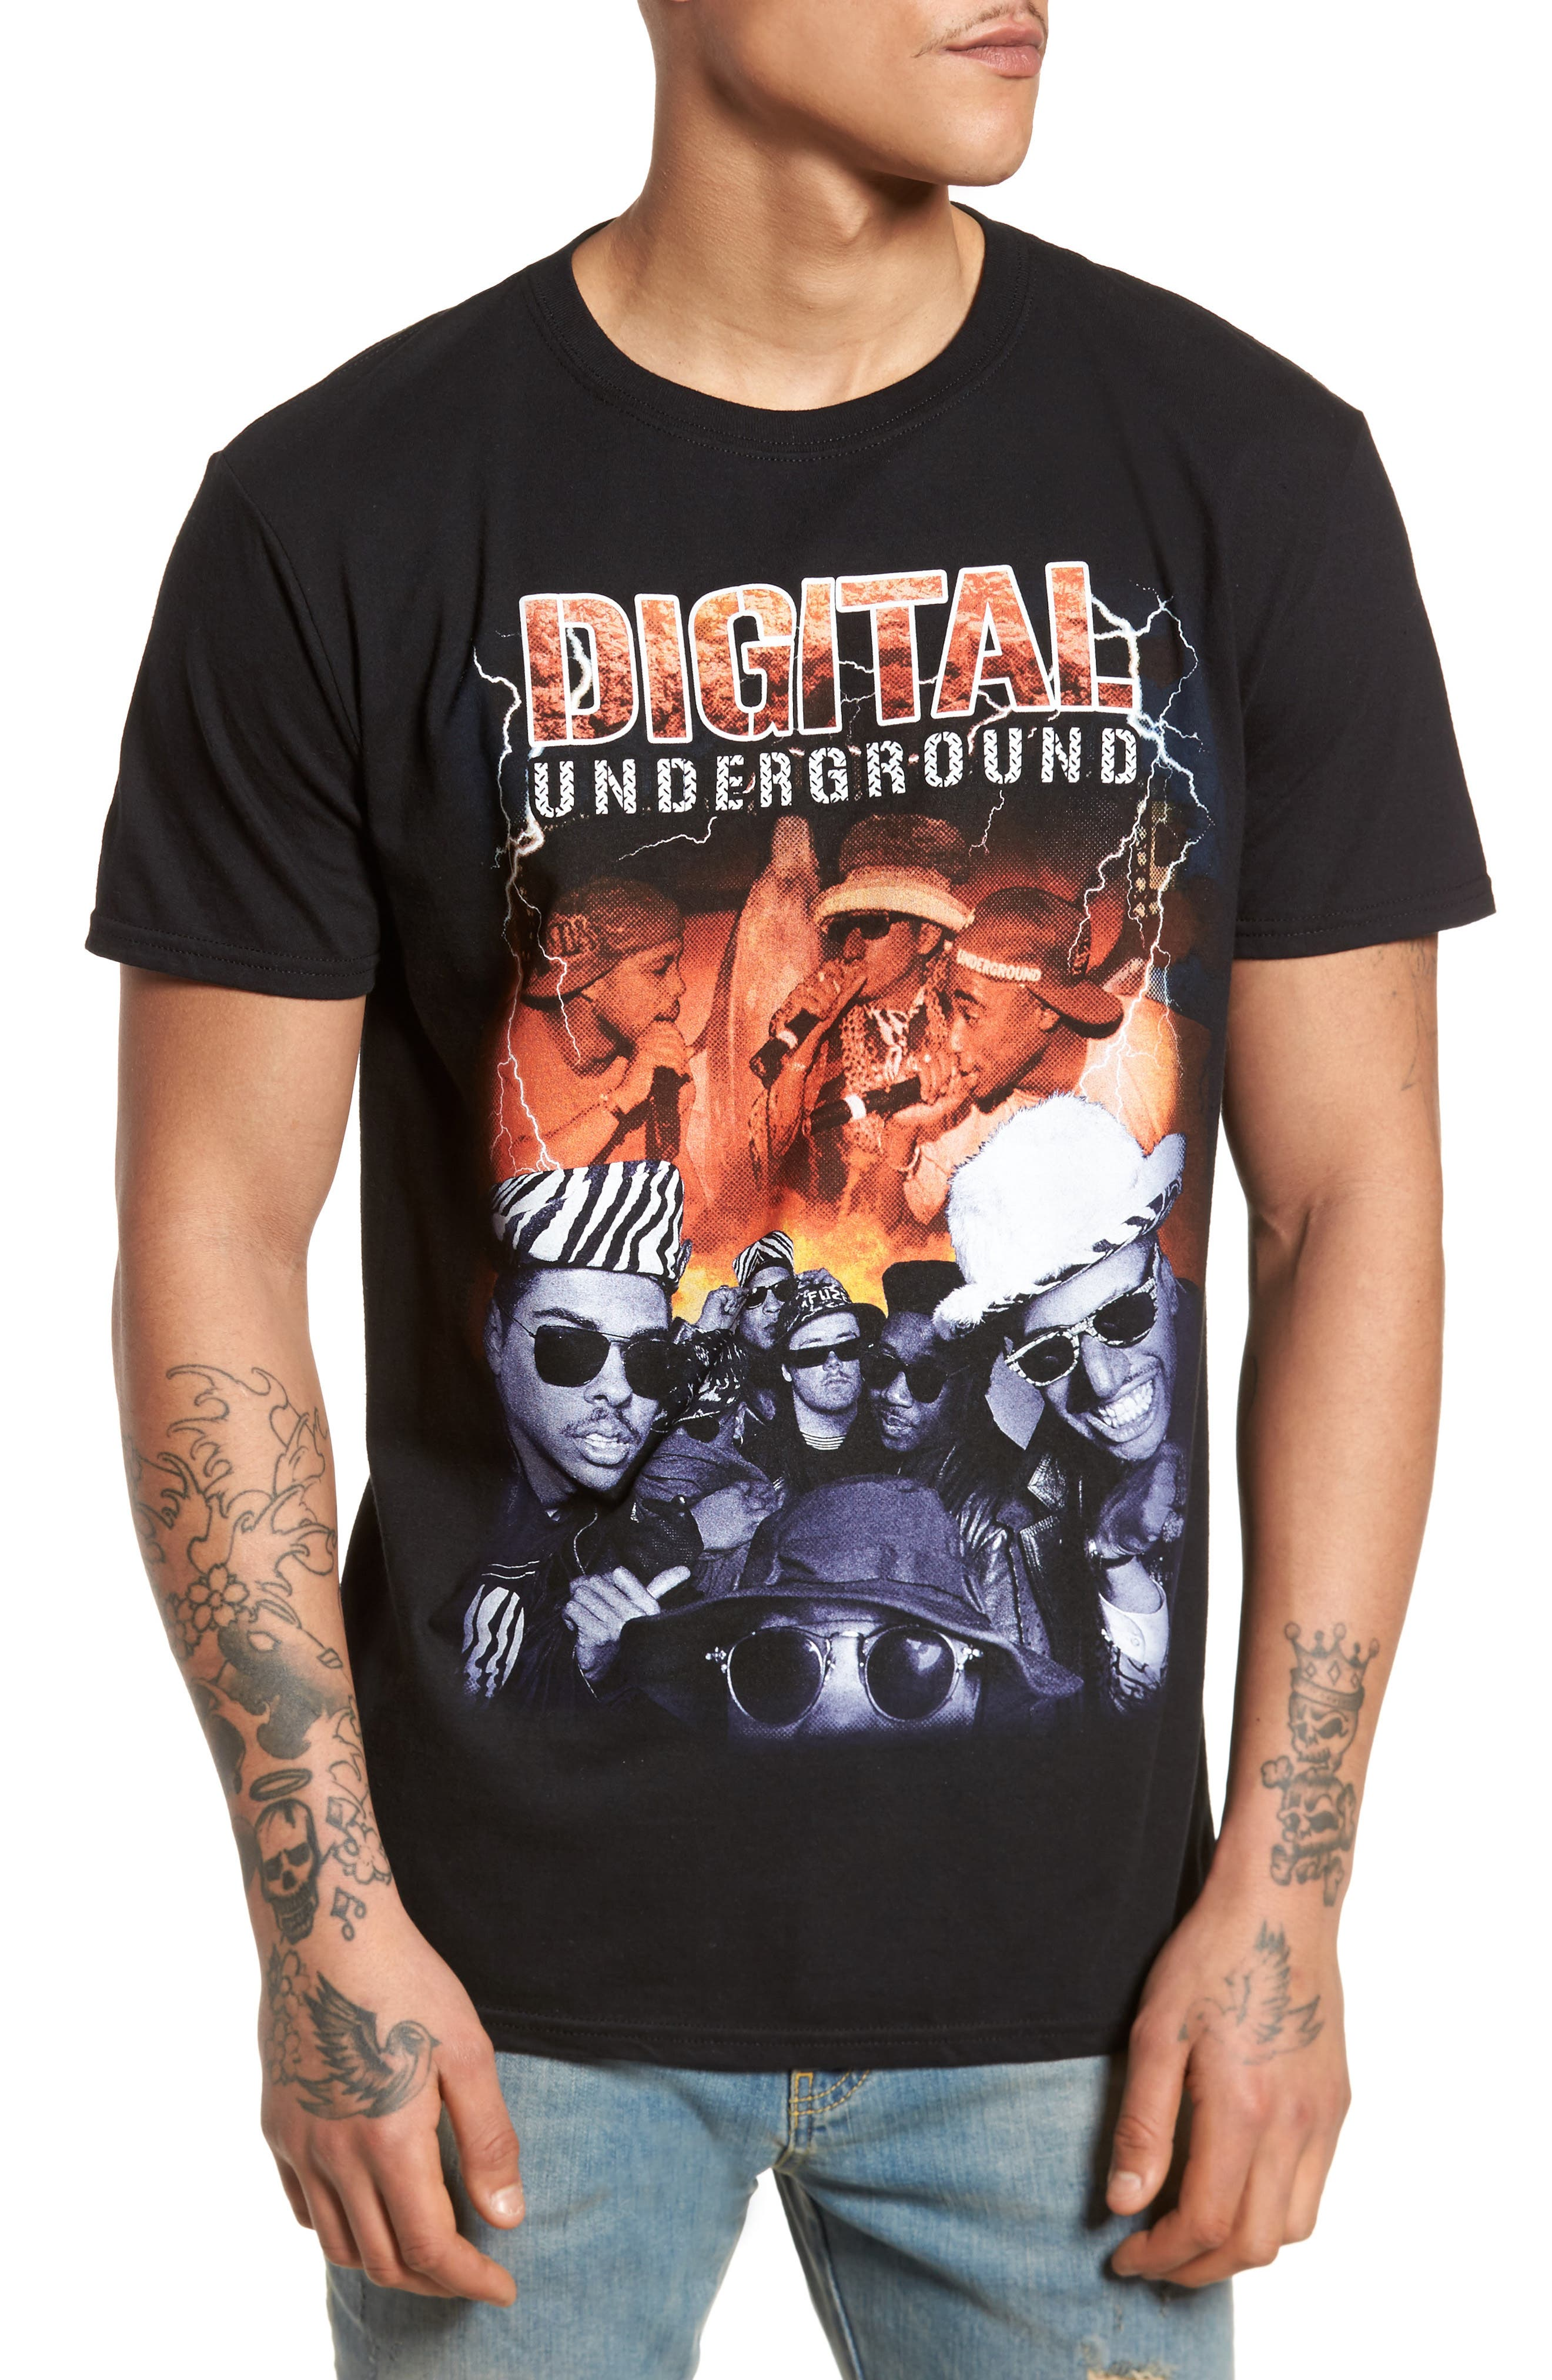 Main Image - The Rail Digital Underground Graphic T-Shirt